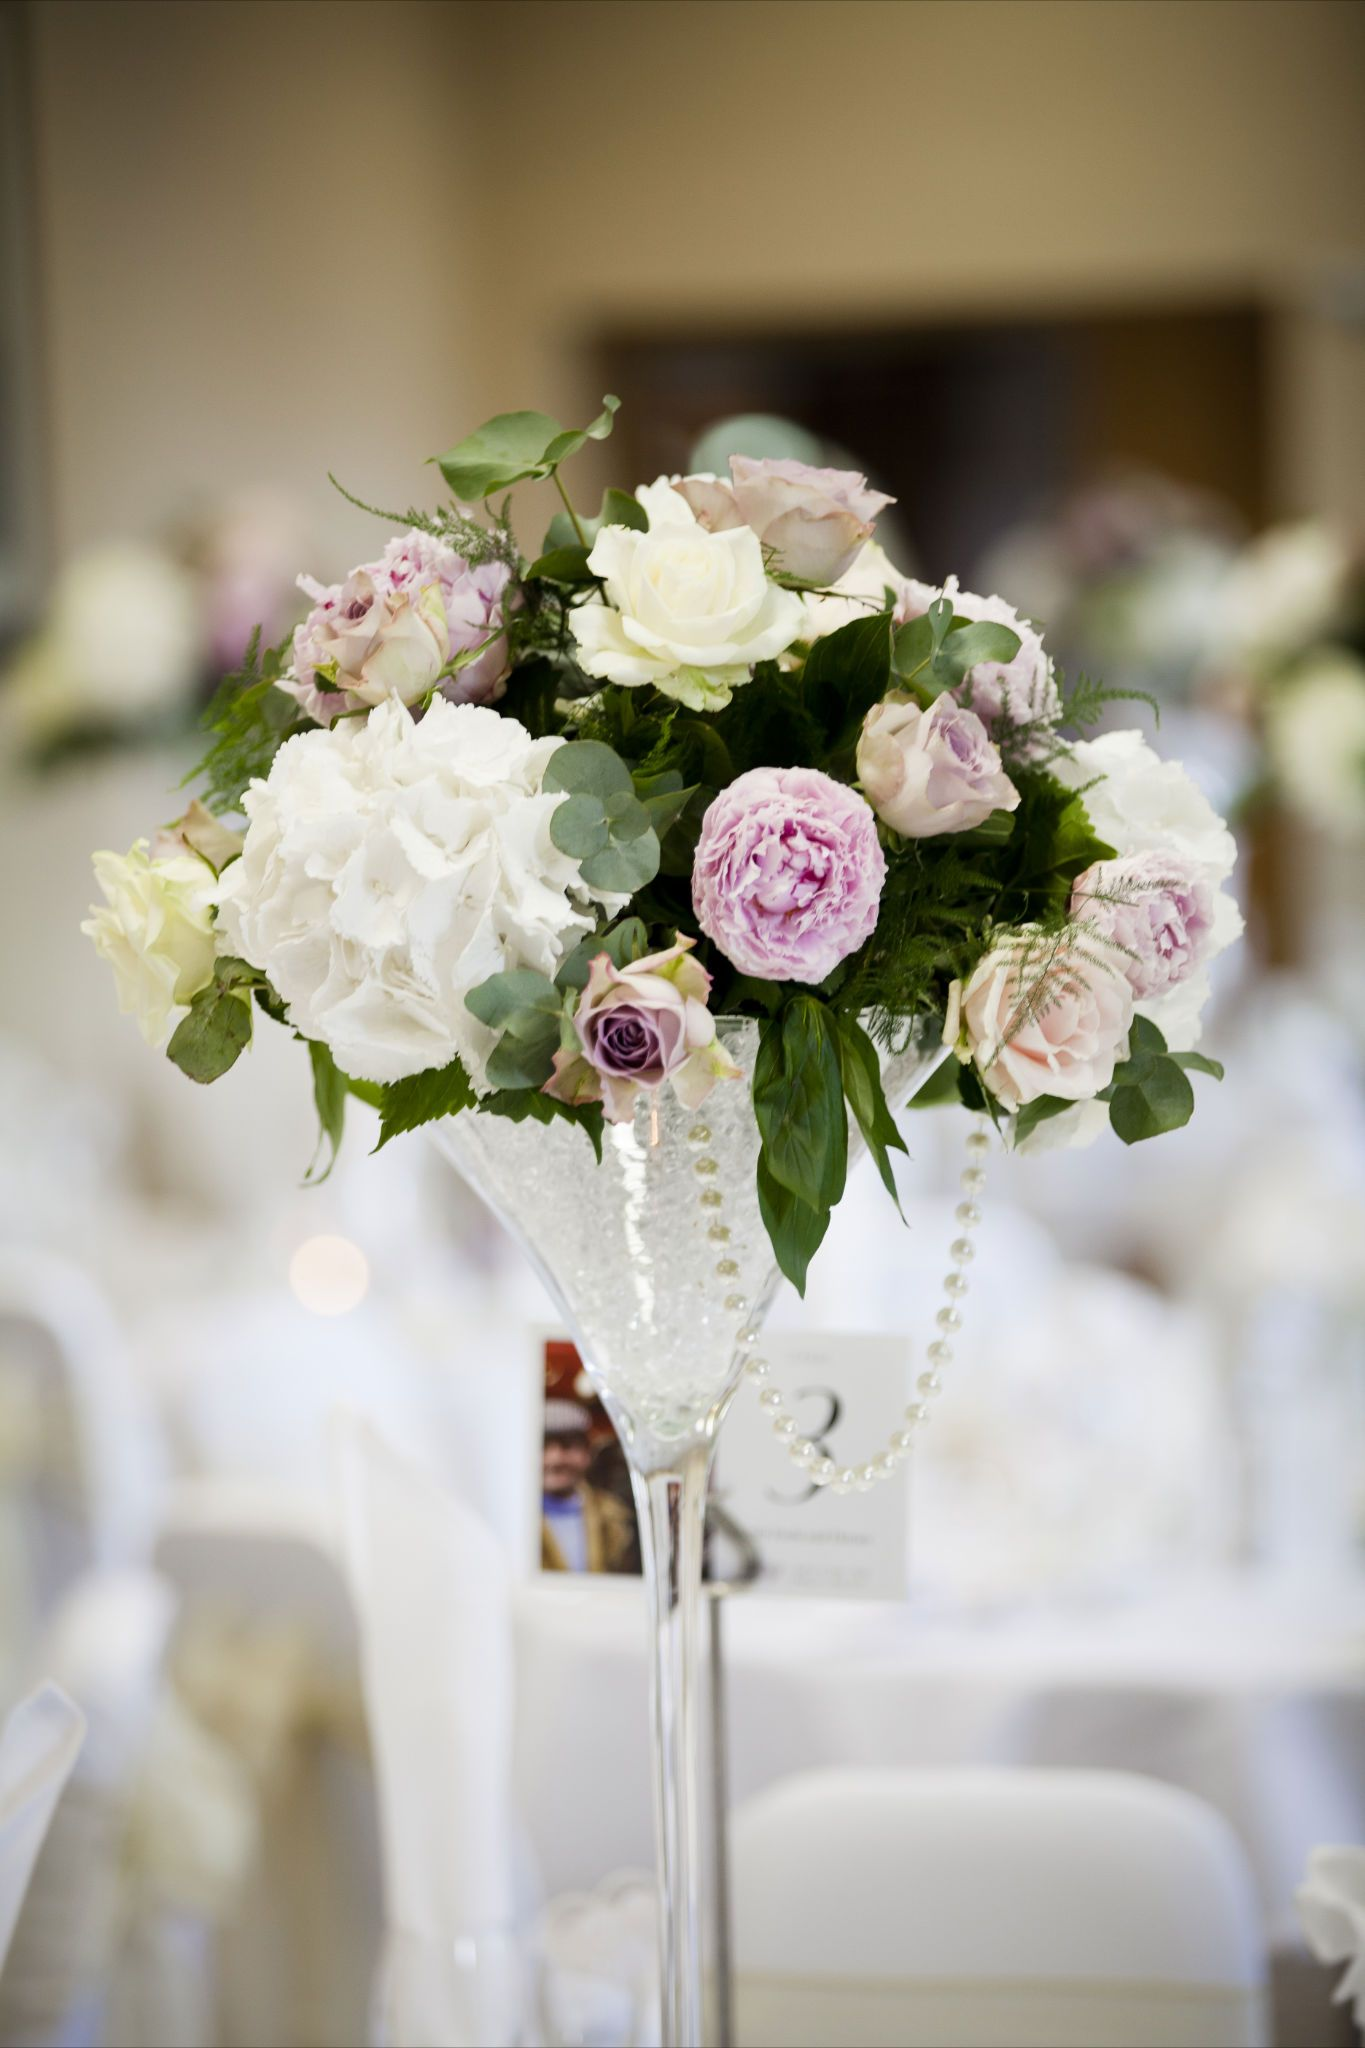 Ivory and pink Hydrangeas Roses and Peonies martini vase centre